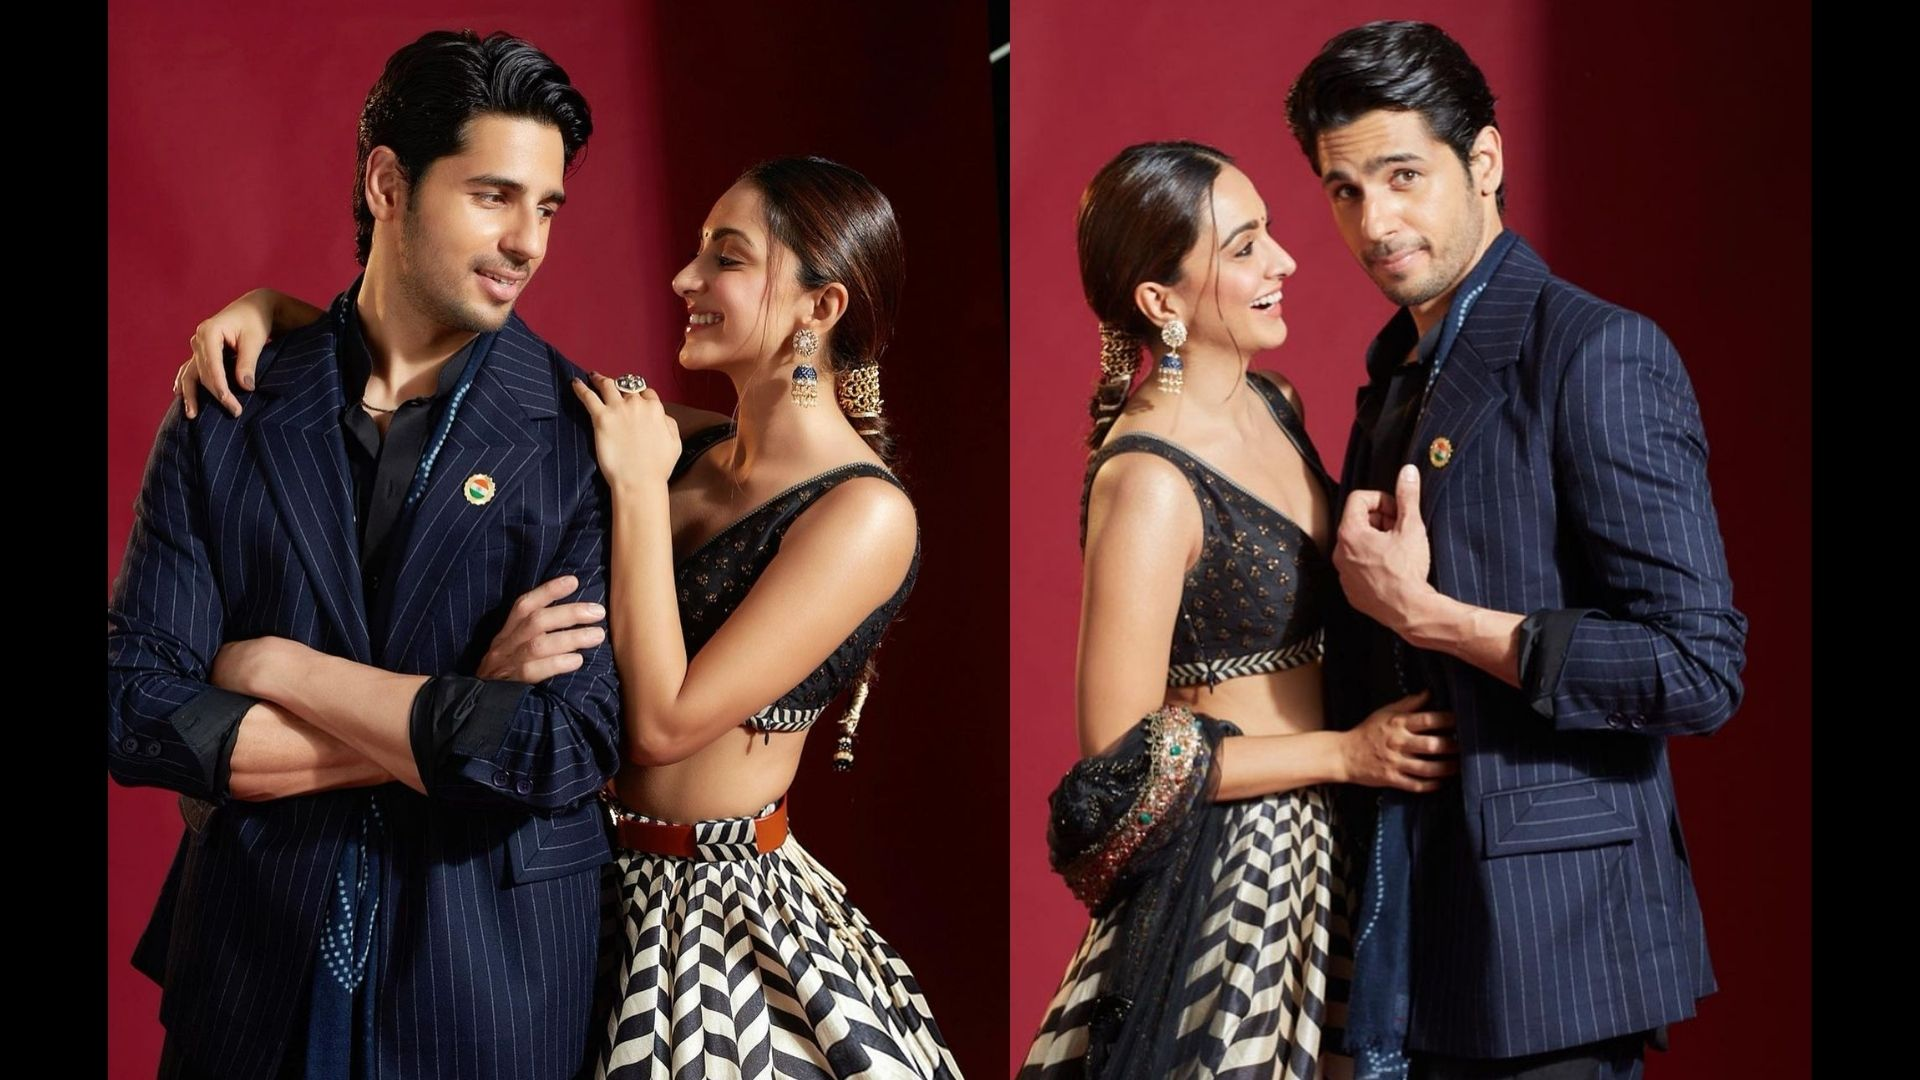 Kiara Advani Spills The Beans On Her Love Life; Open Ups About Her Chemistry With Rumoured Boyfriend Sidharth Malhotra